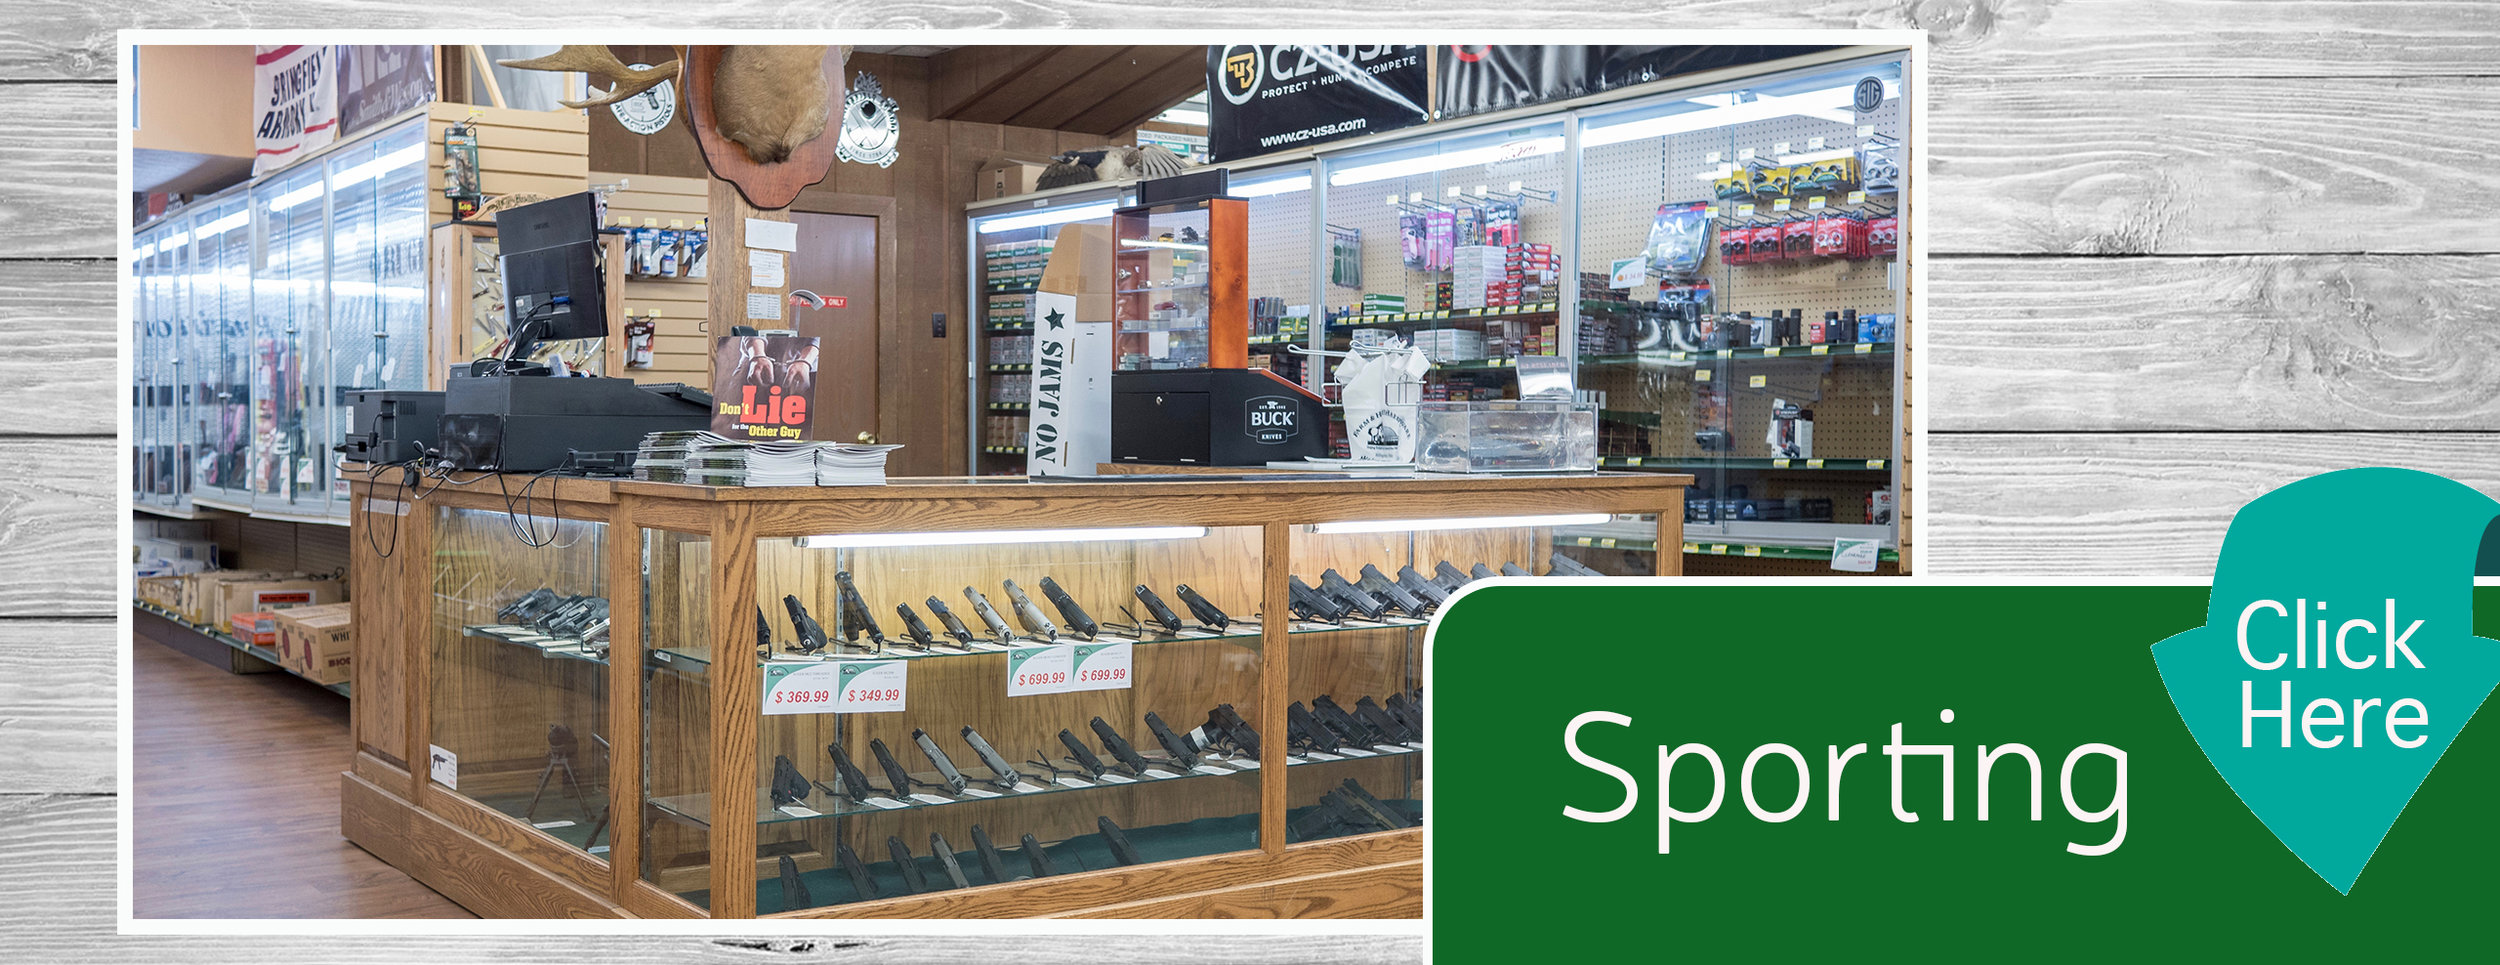 Sporting Goods Home Page Banner